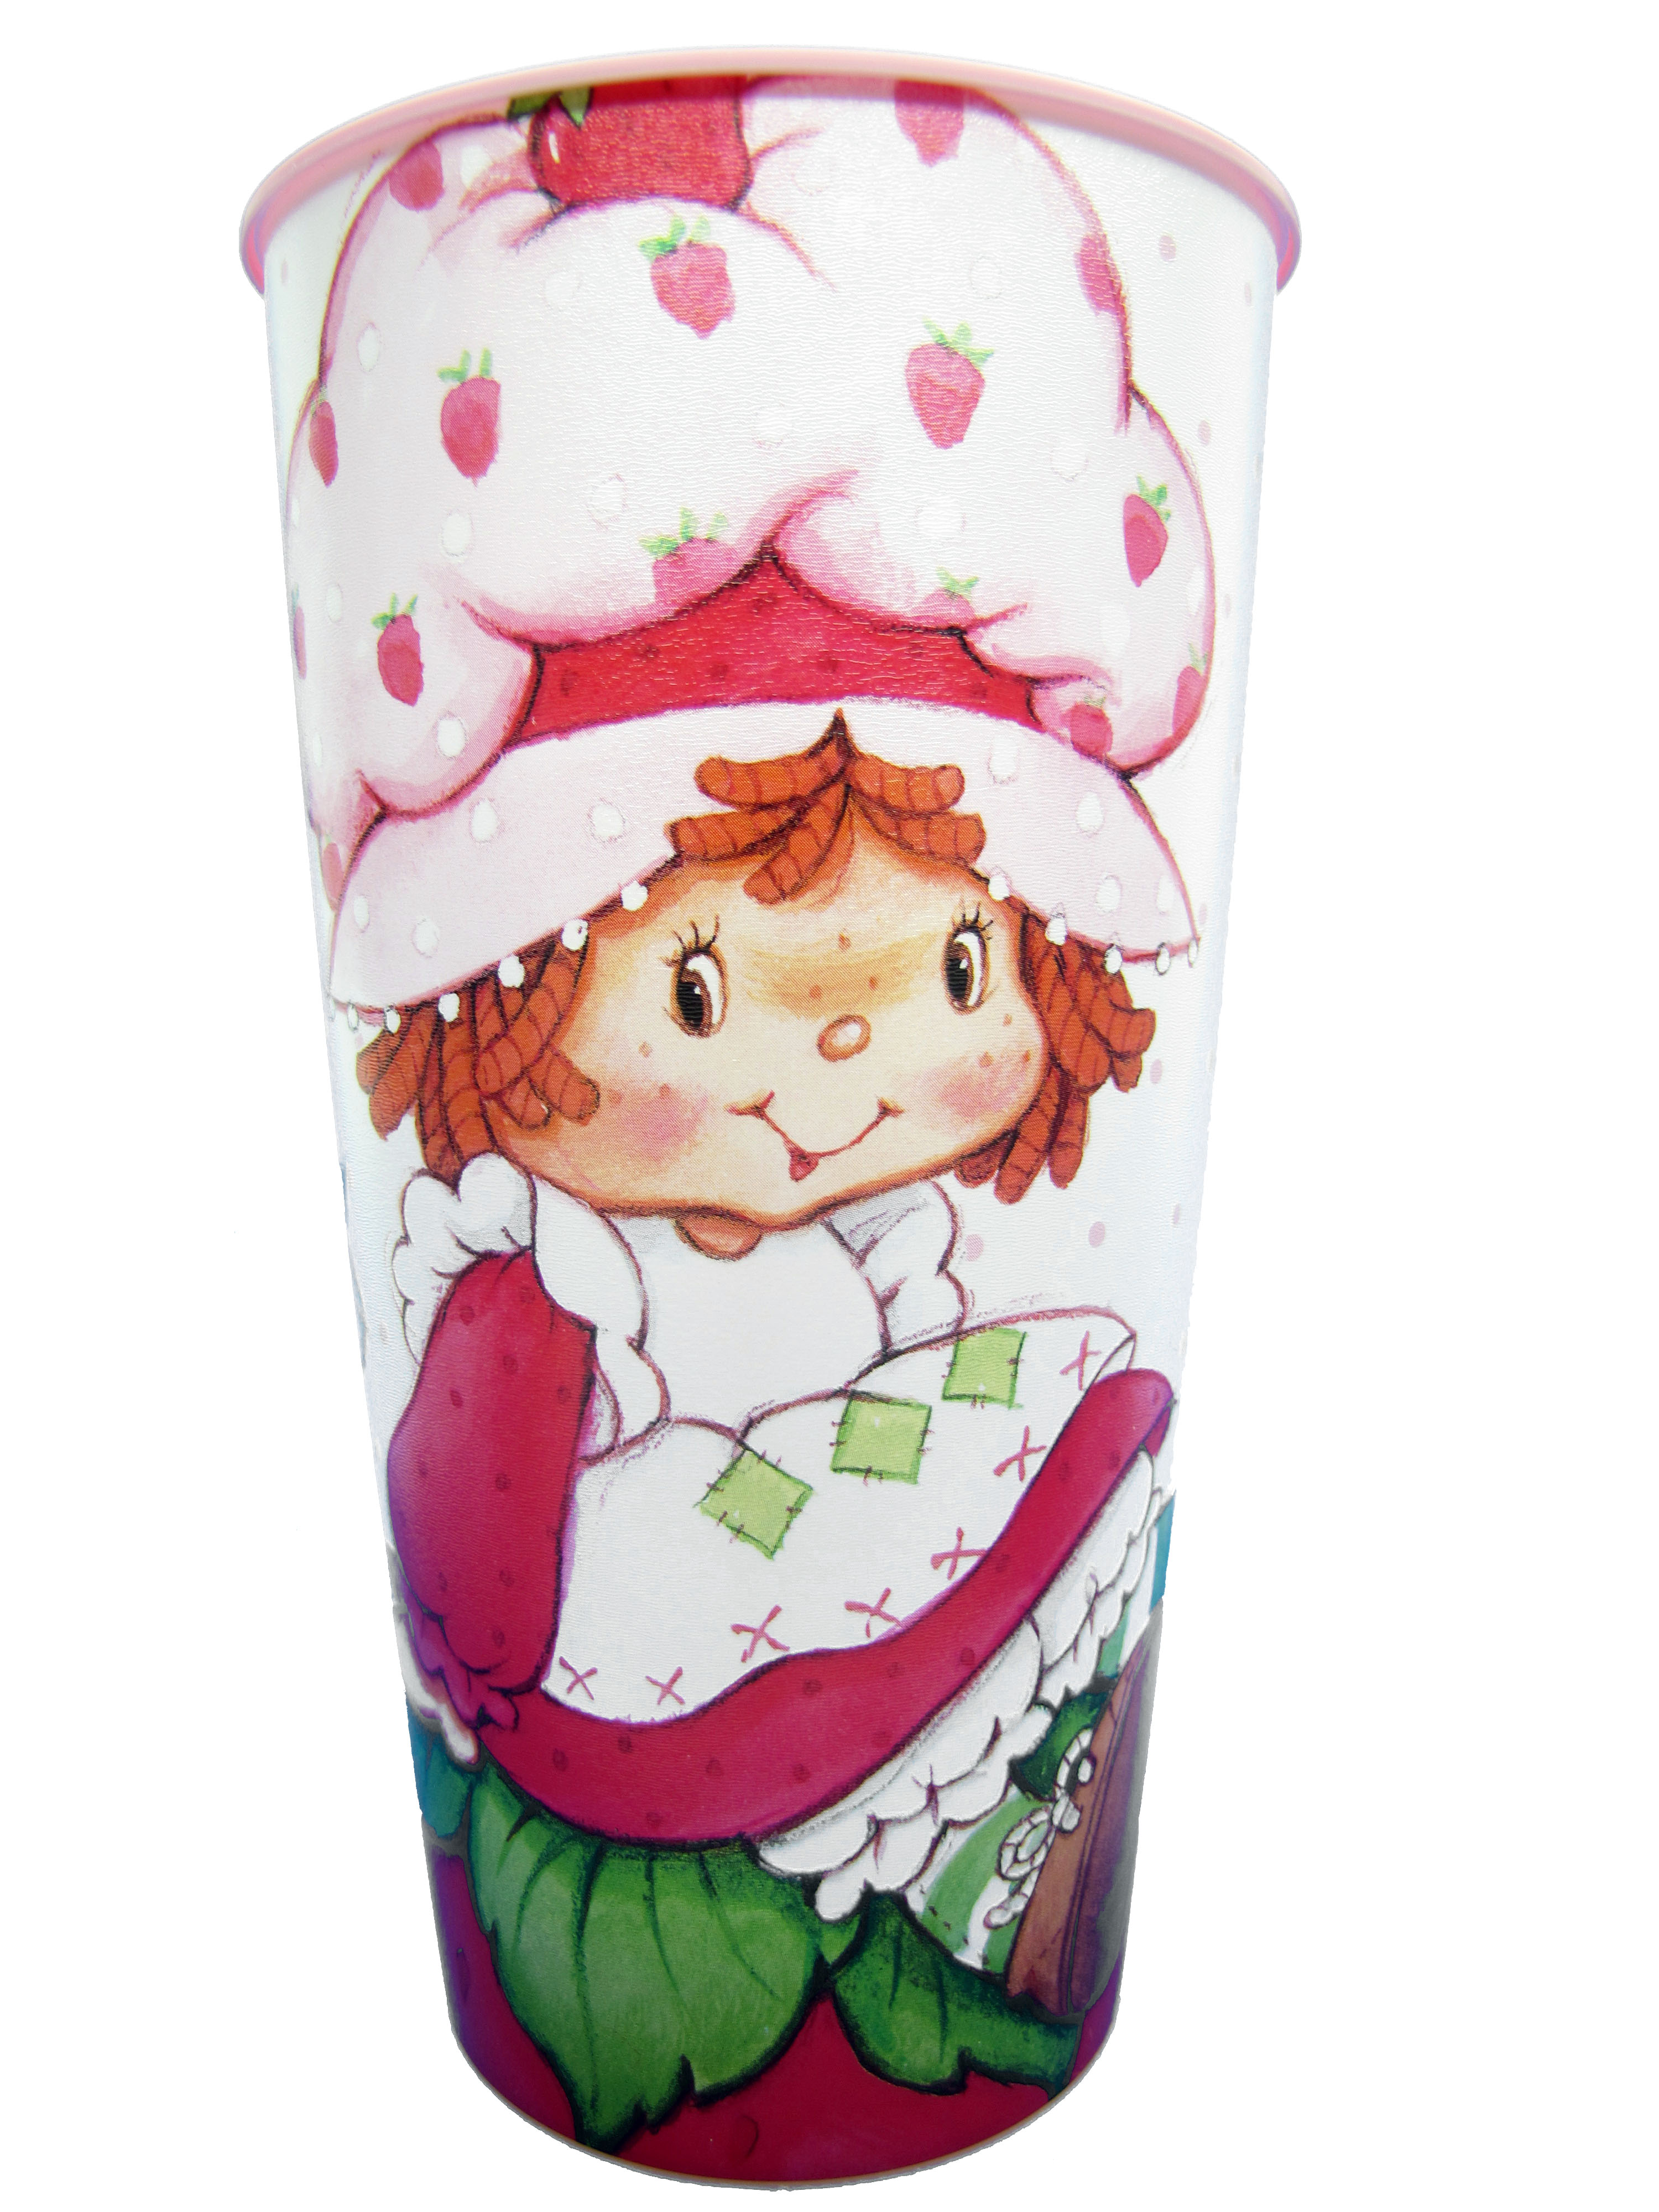 Retro Strawberry Shortcake Party Cup